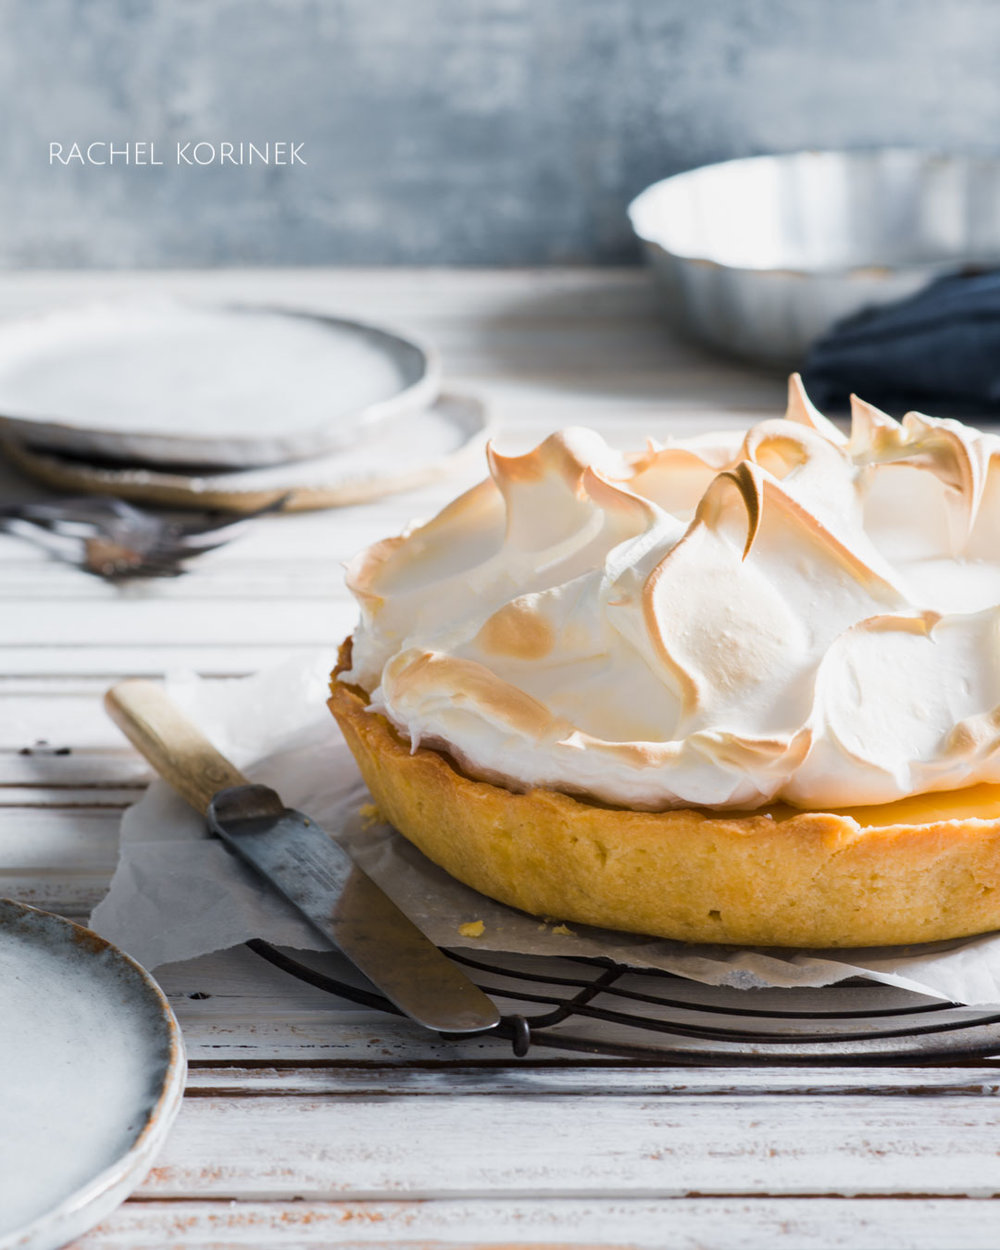 Rachel Korinek Melbourne Food Photographer, Lemon Meringue Pie